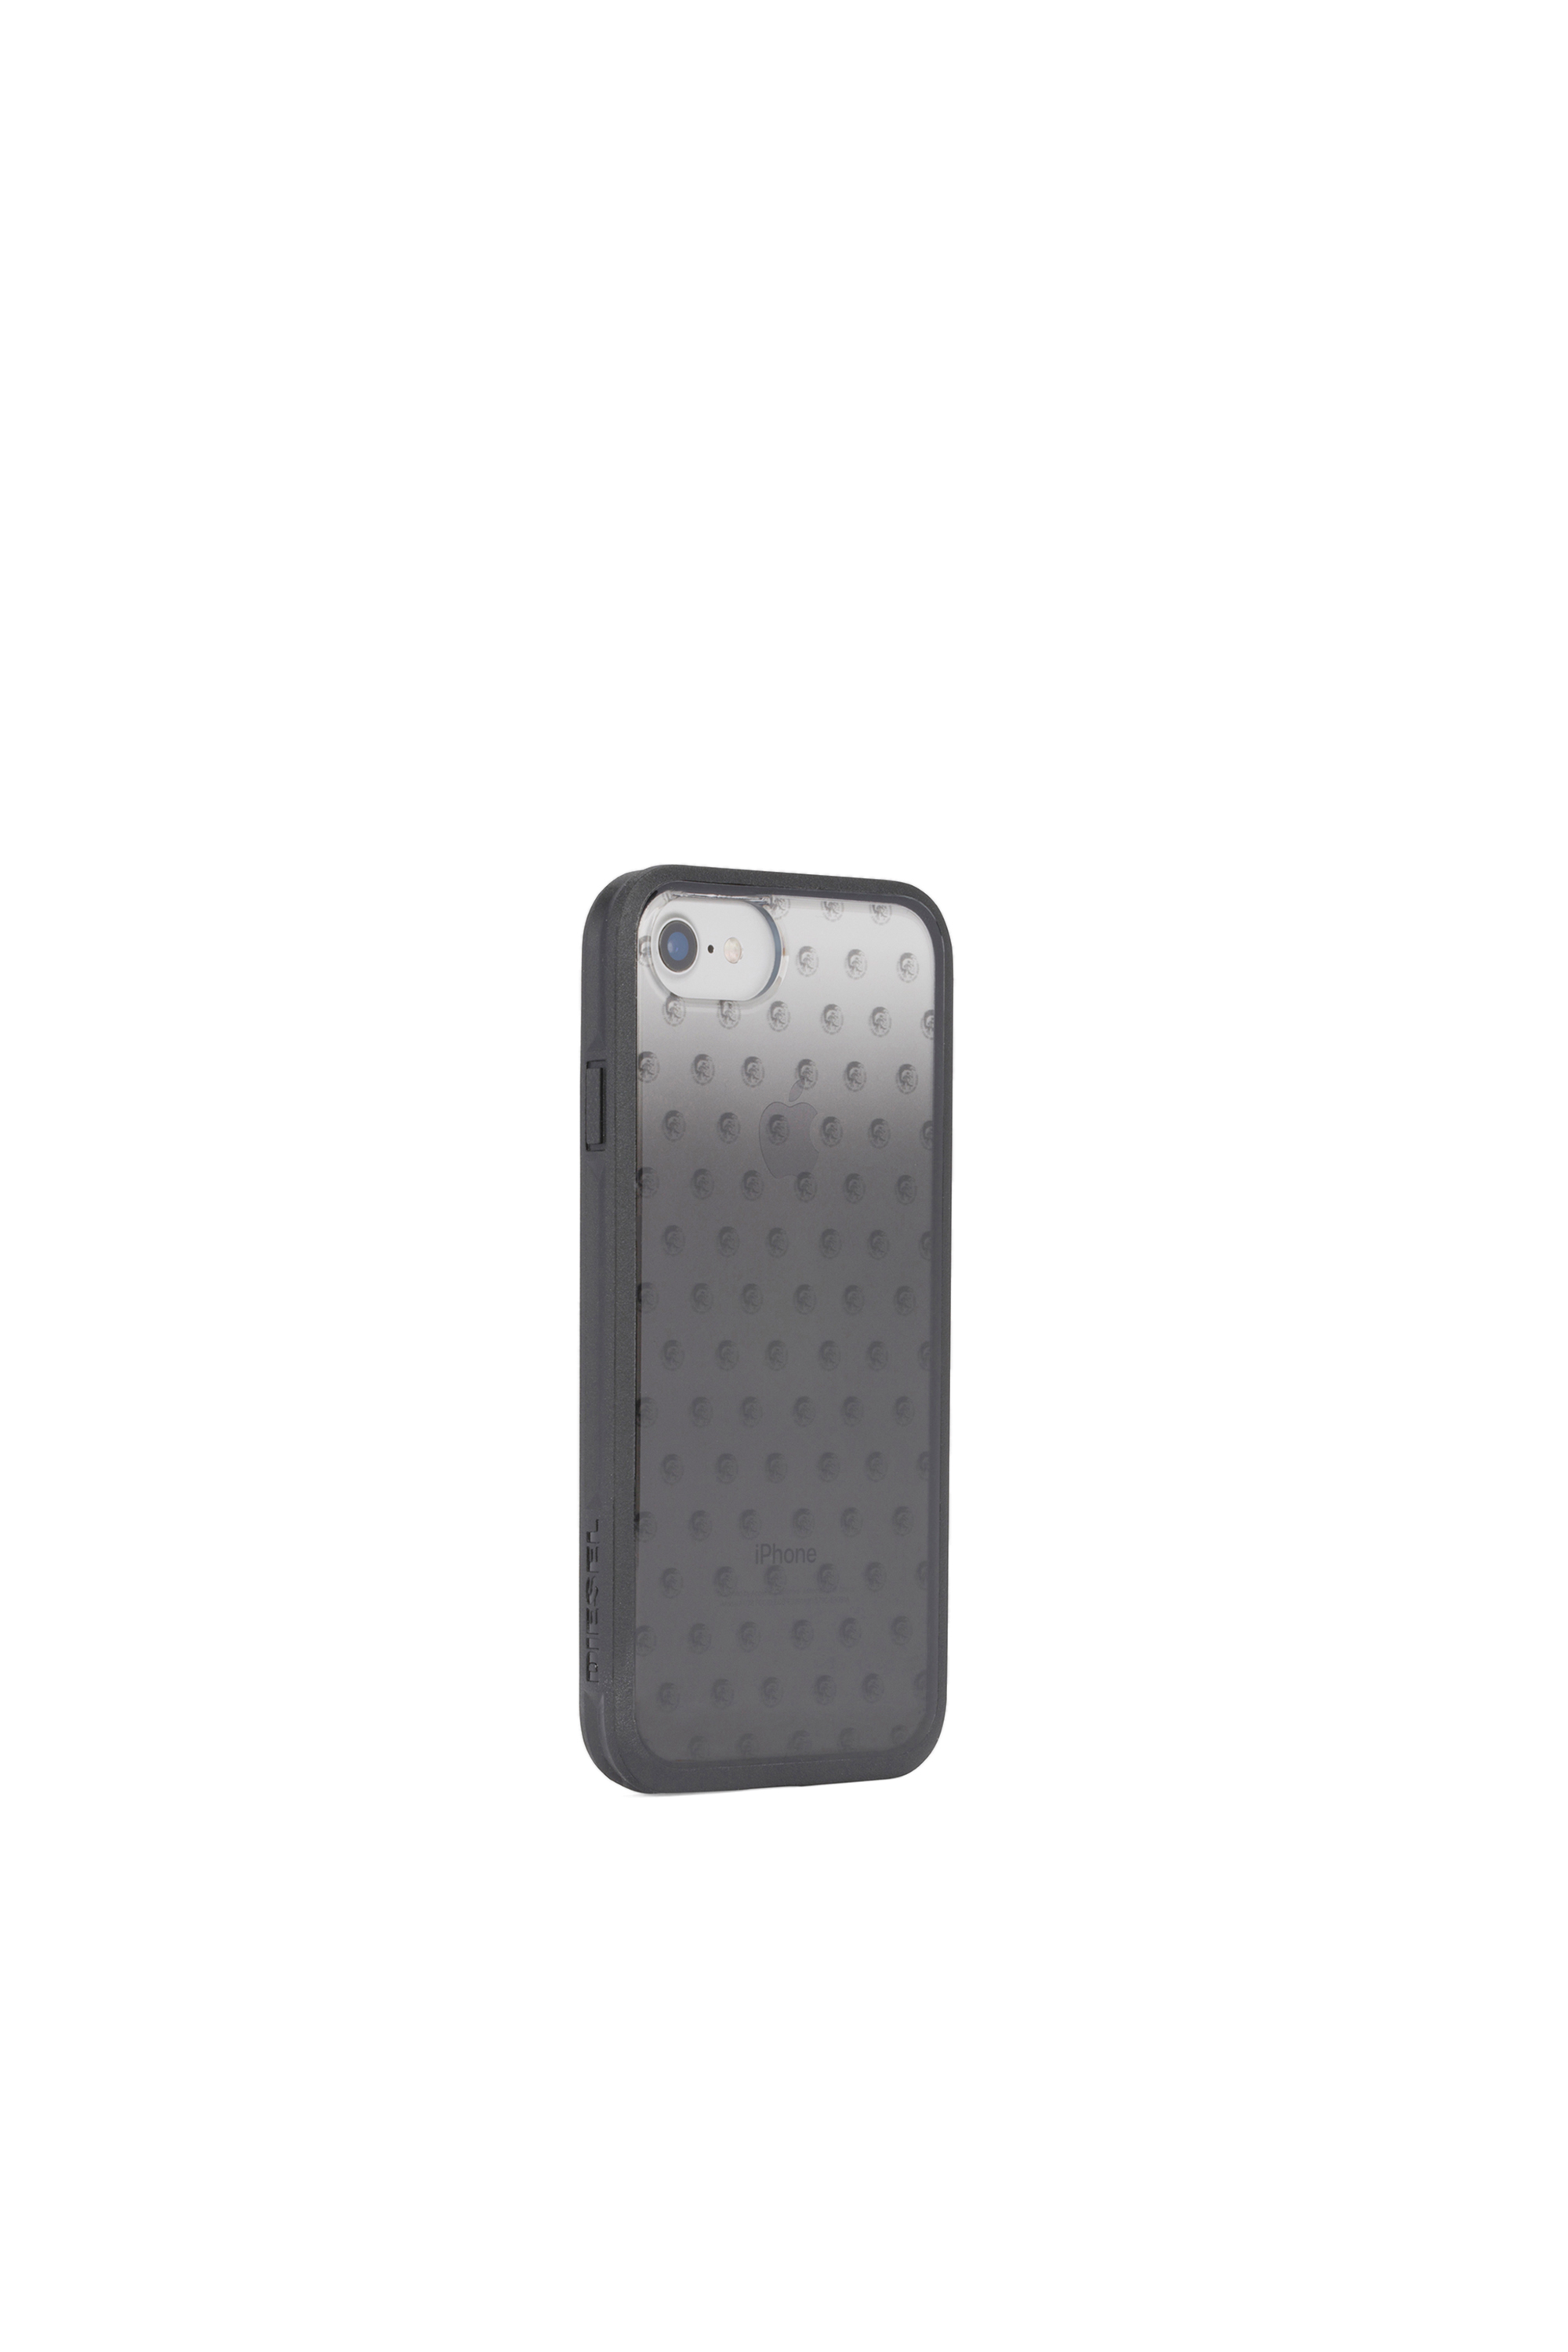 Diesel - MOHICAN HEAD DOTS BLACK IPHONE 8/7/6s/6 CASE,  - Fundas - Image 6